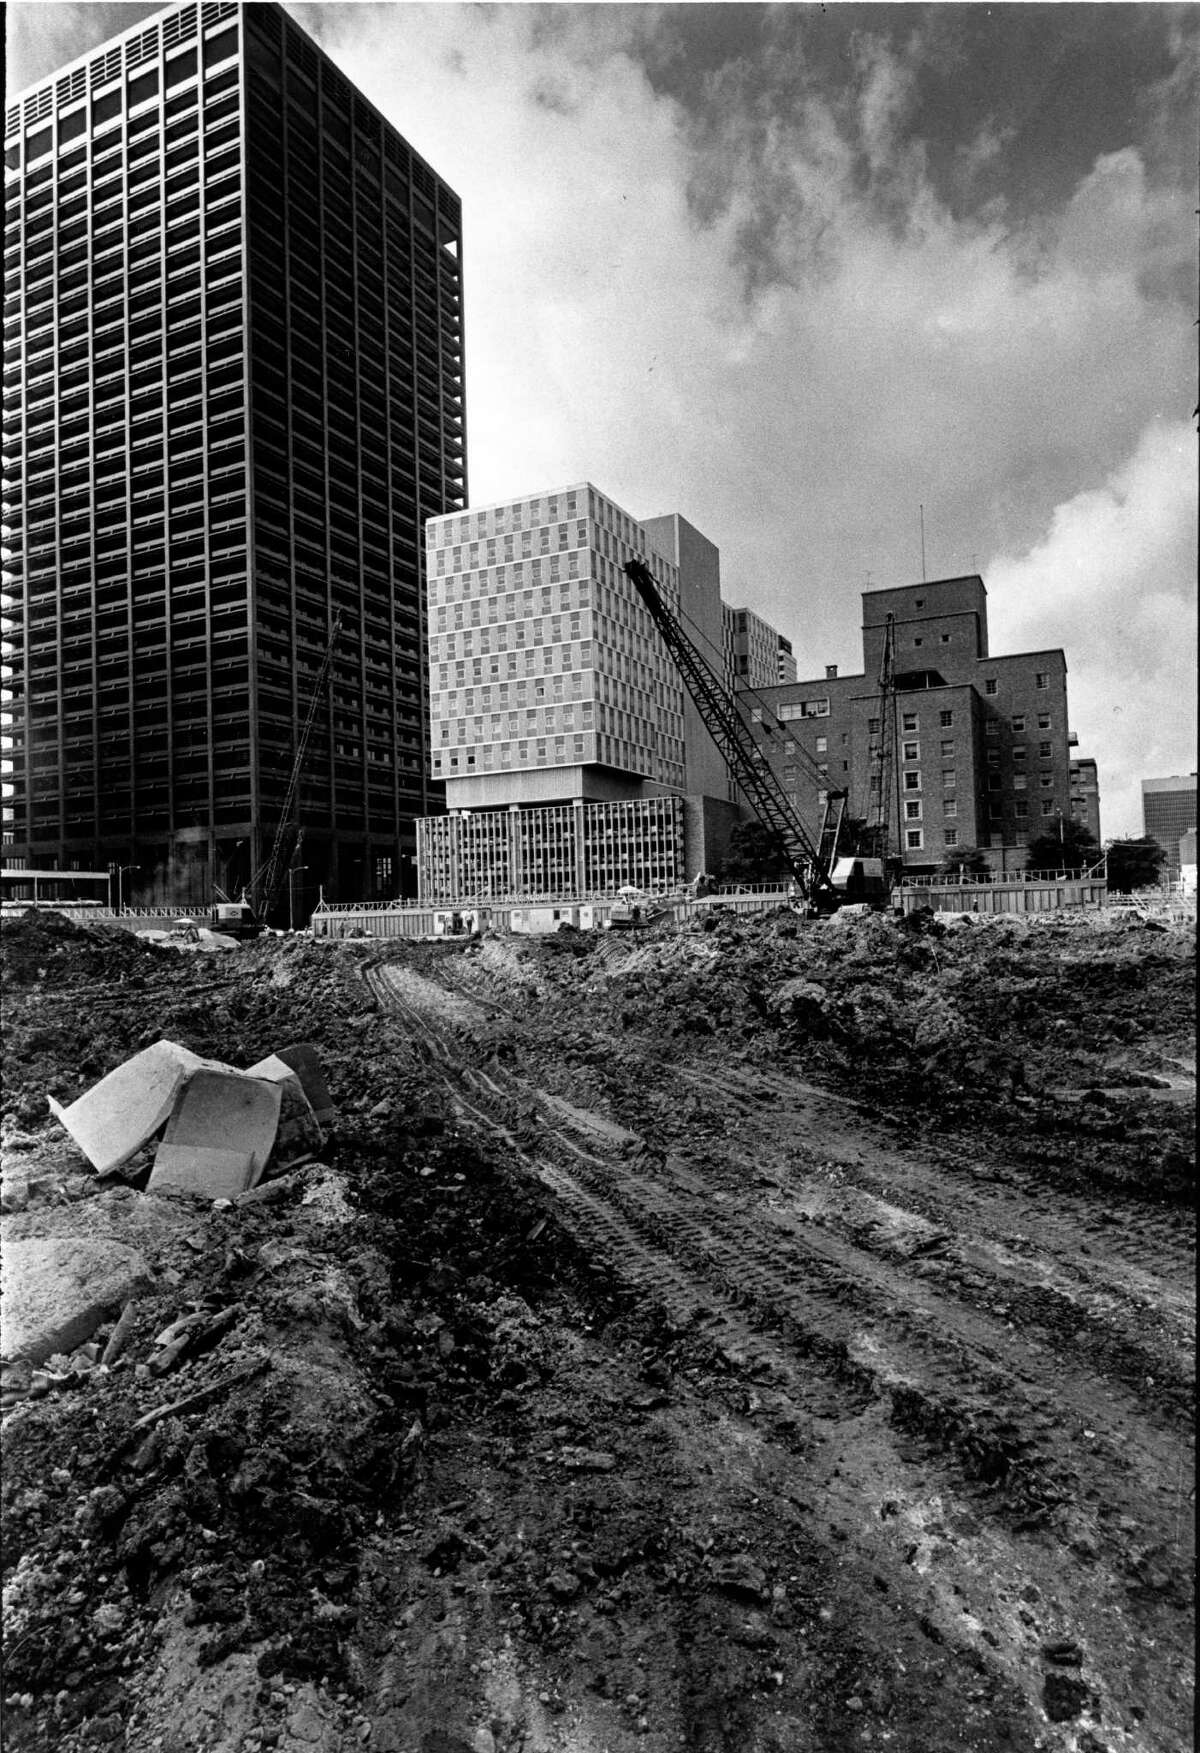 On May 27, 1967 a one-block area bounded by Smith, Louisiana, Walker and McKinney in downtown Houston is leveled for the construction of the 50-story One Shell Plaza. Gerald Hines Interests is the developer of the downtown skyscraper being built by W.S. Bellows Construction Co.